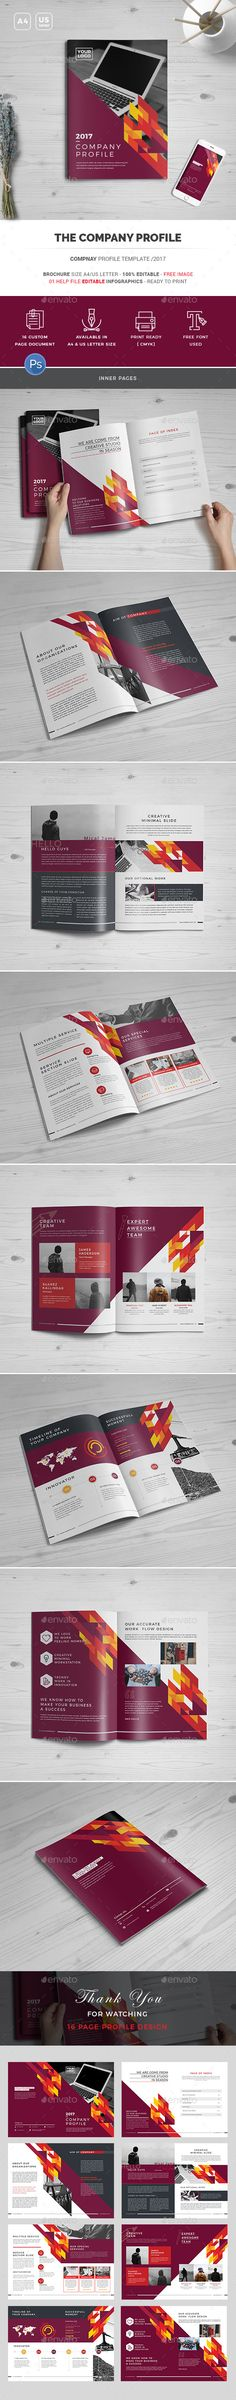 Corporate Brochure (Square Format) Corporate brochure, Brochures - format of company profile